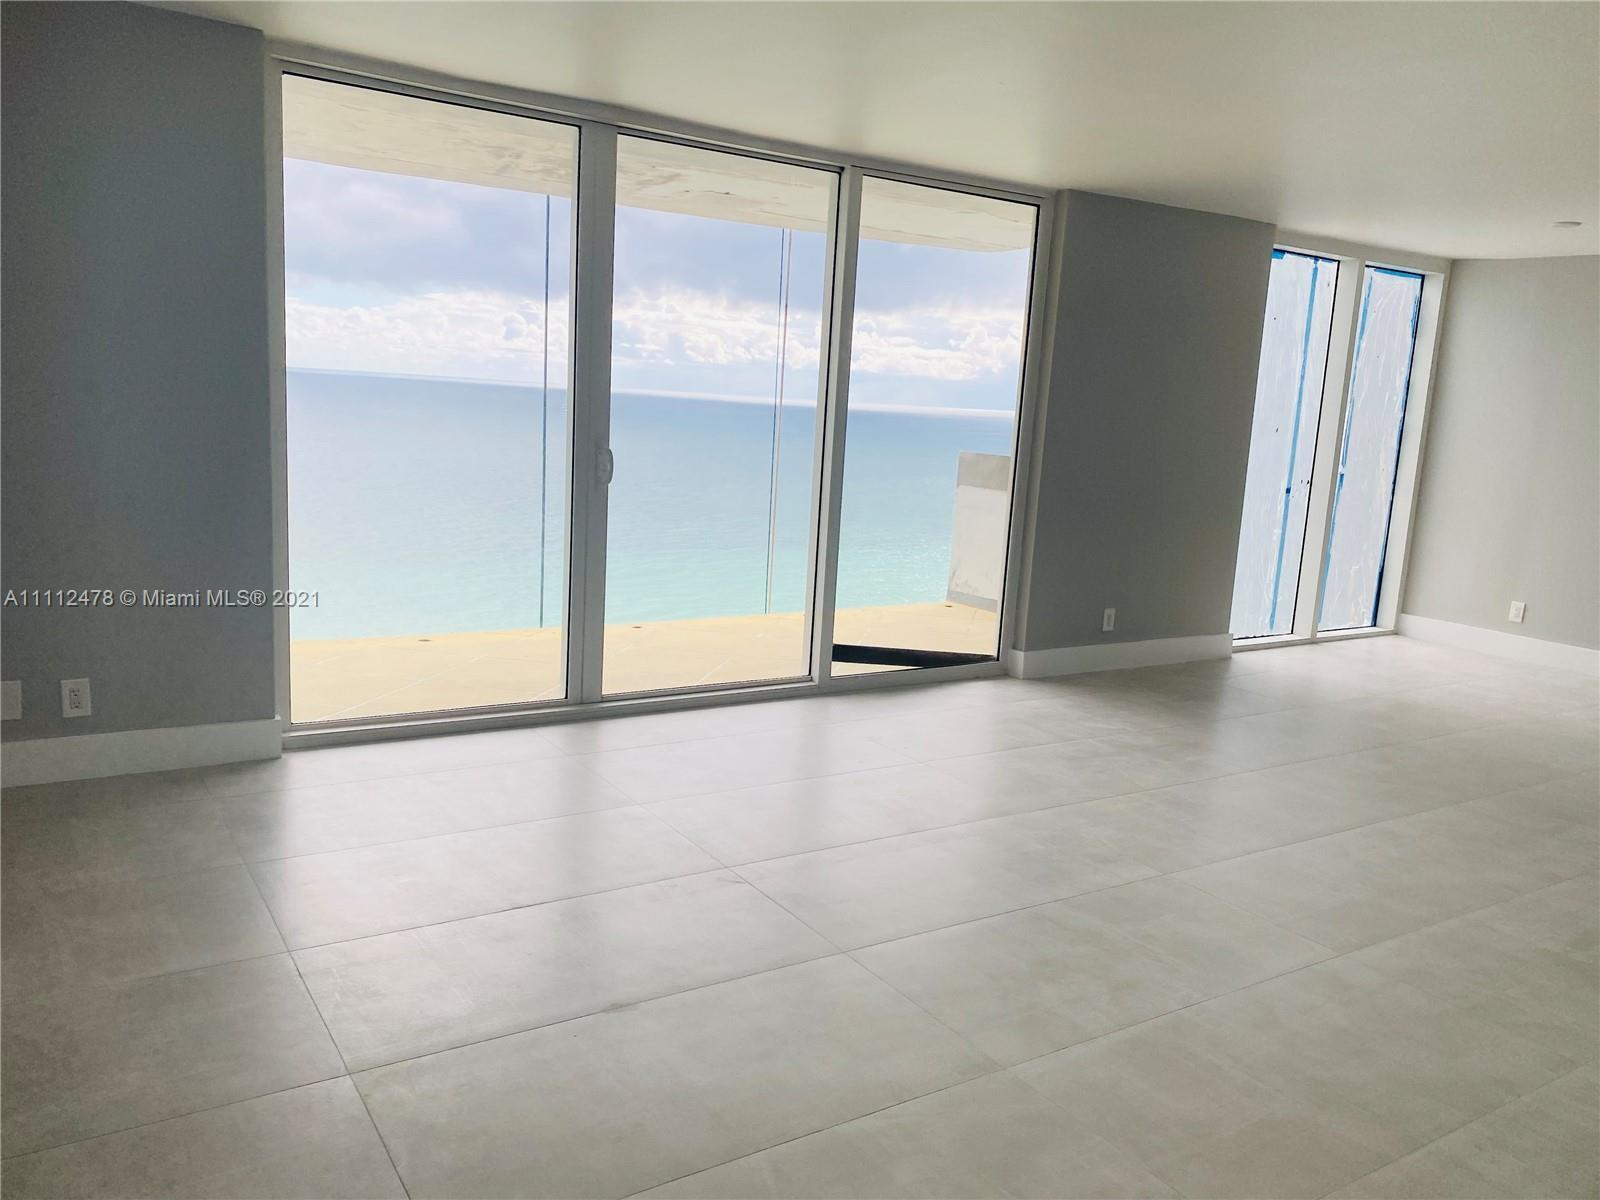 Newly renovated corner condo with direct ocean views!  This one-of-a-kind condo includes all new and